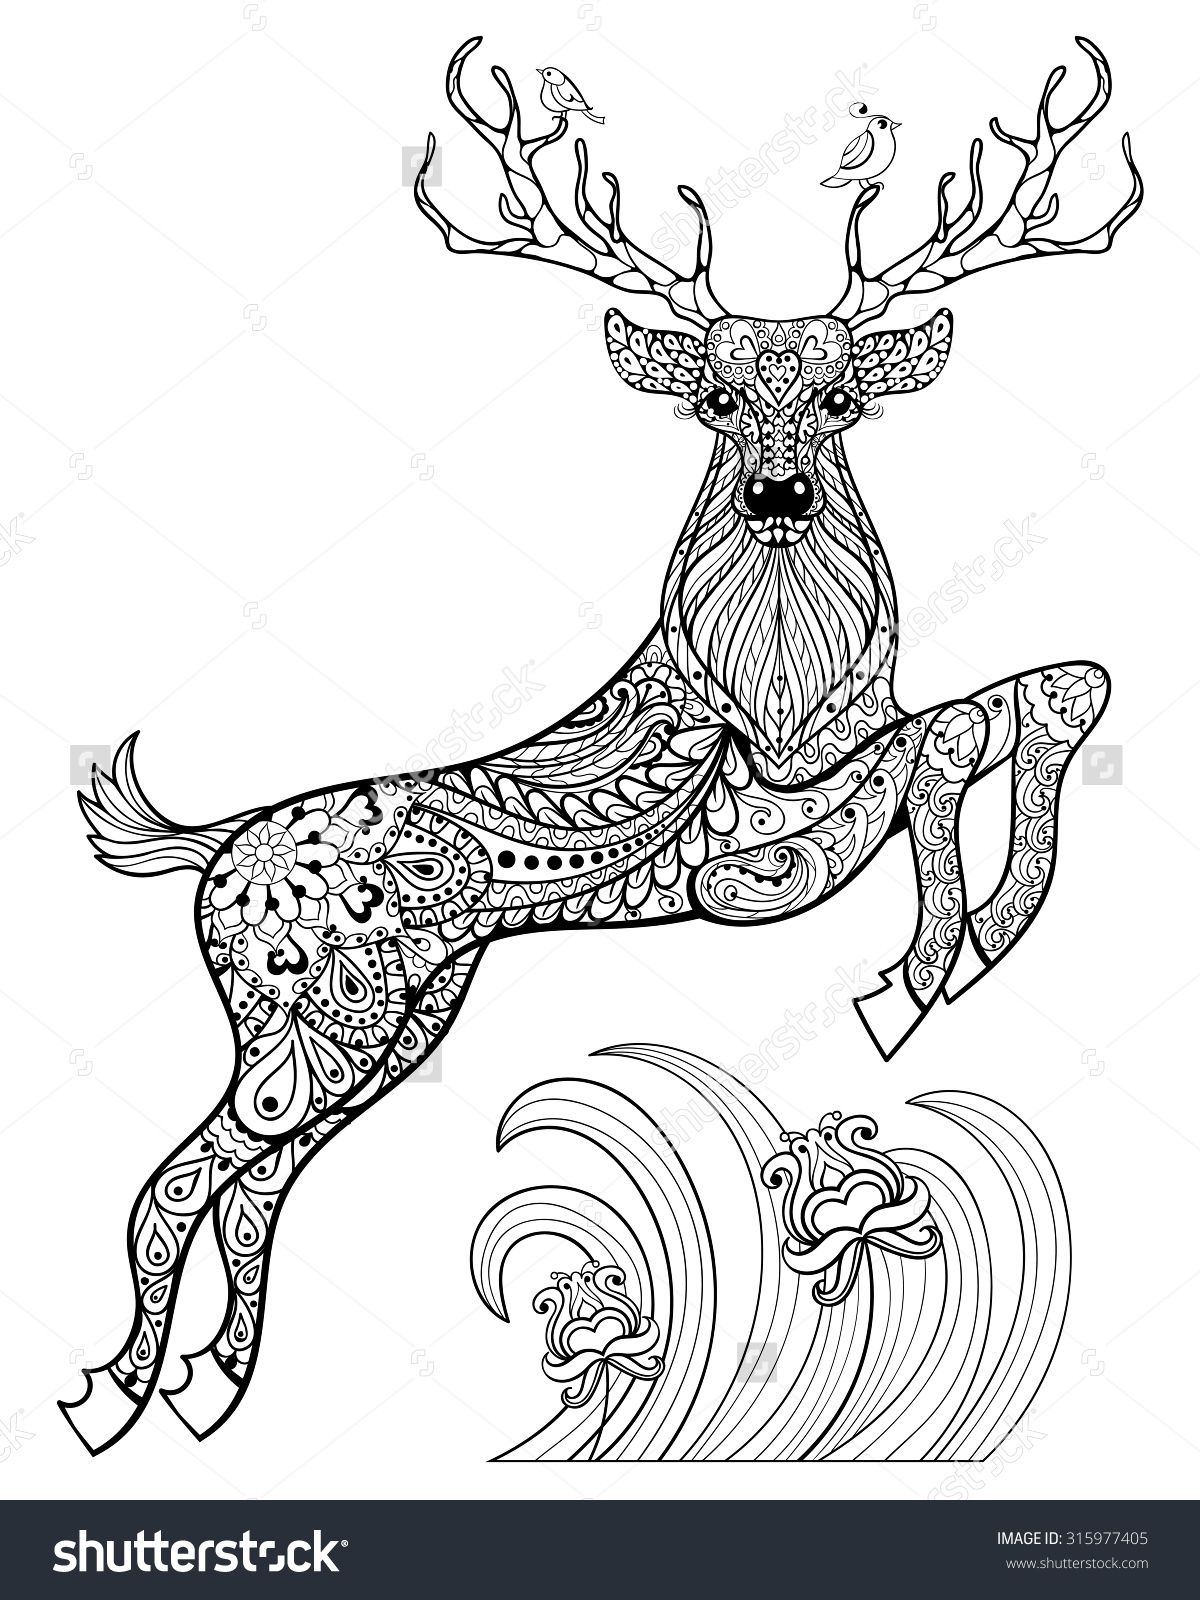 Colouring in for adults why - Deer Coloring Pages For Adults